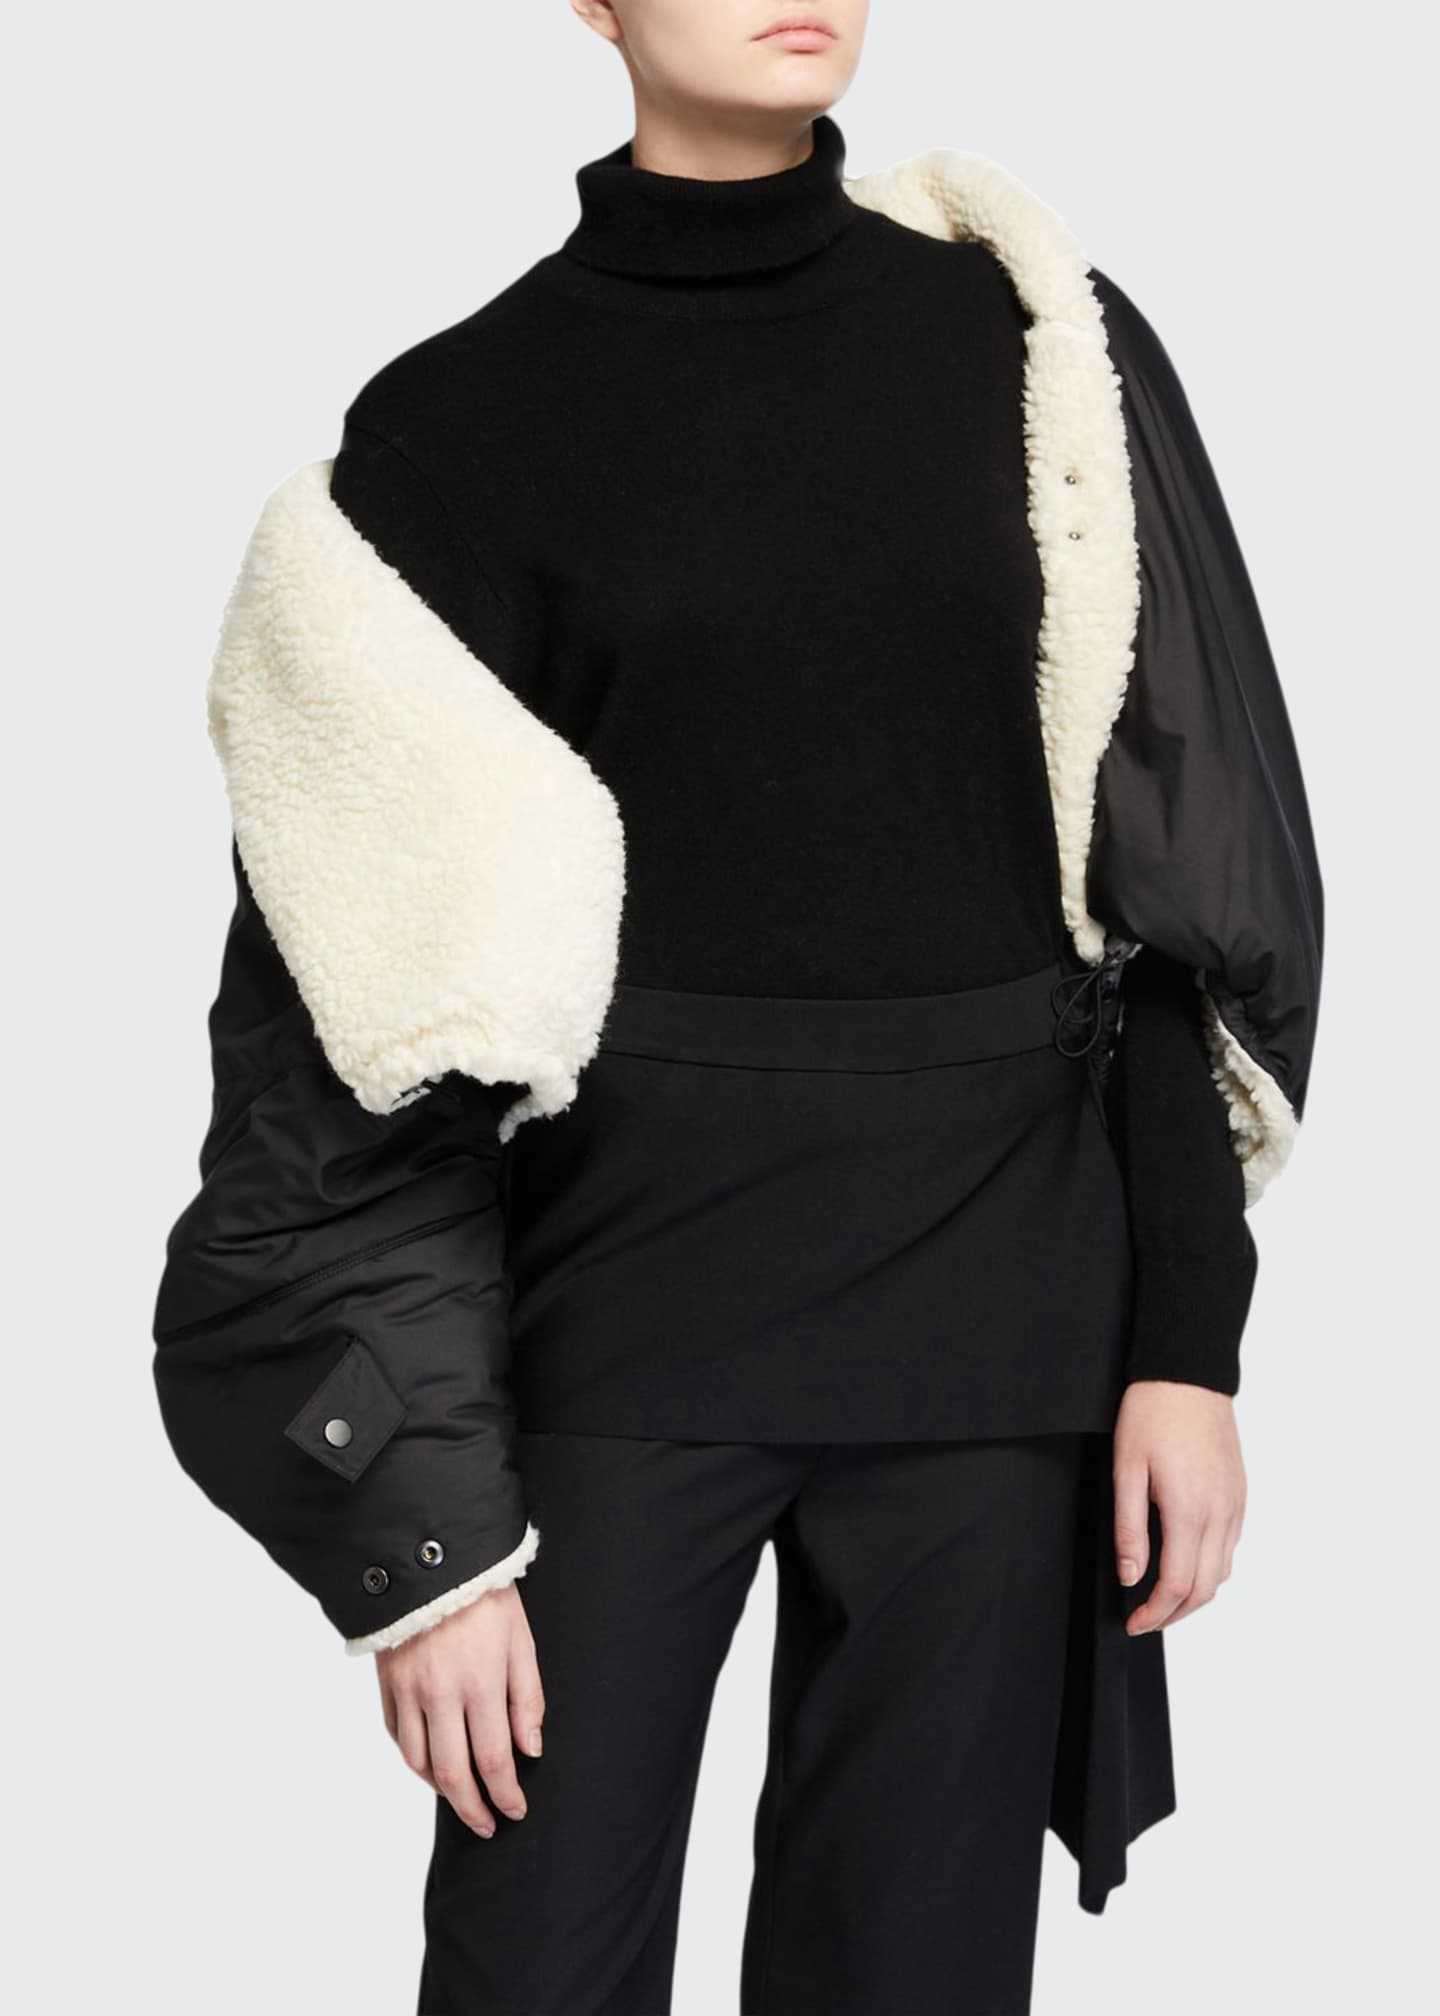 3.1 Phillip Lim Reversible Wool Sherpa Cape